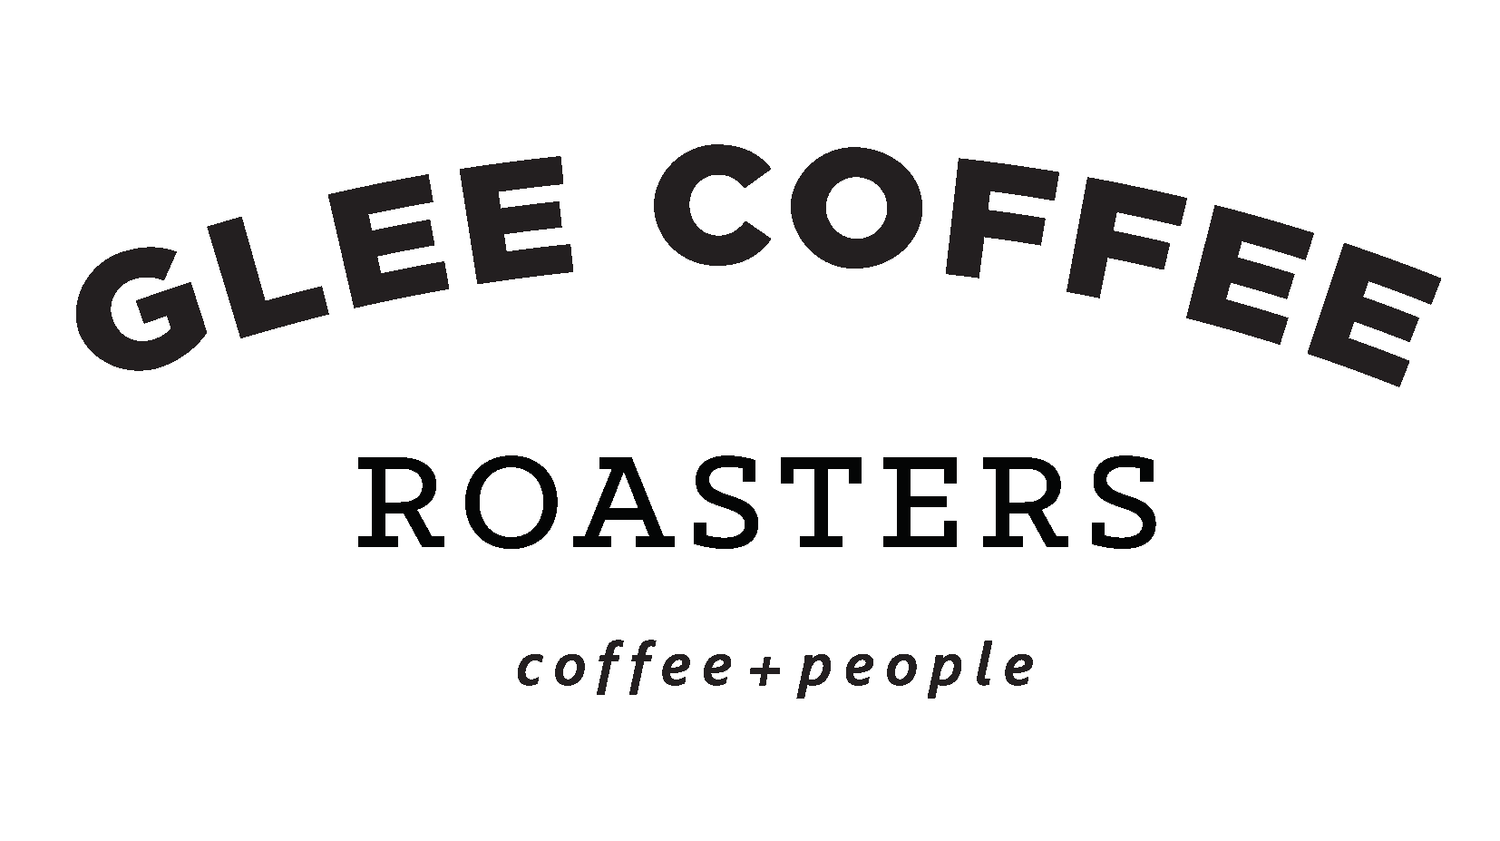 Glee Coffee Roasters